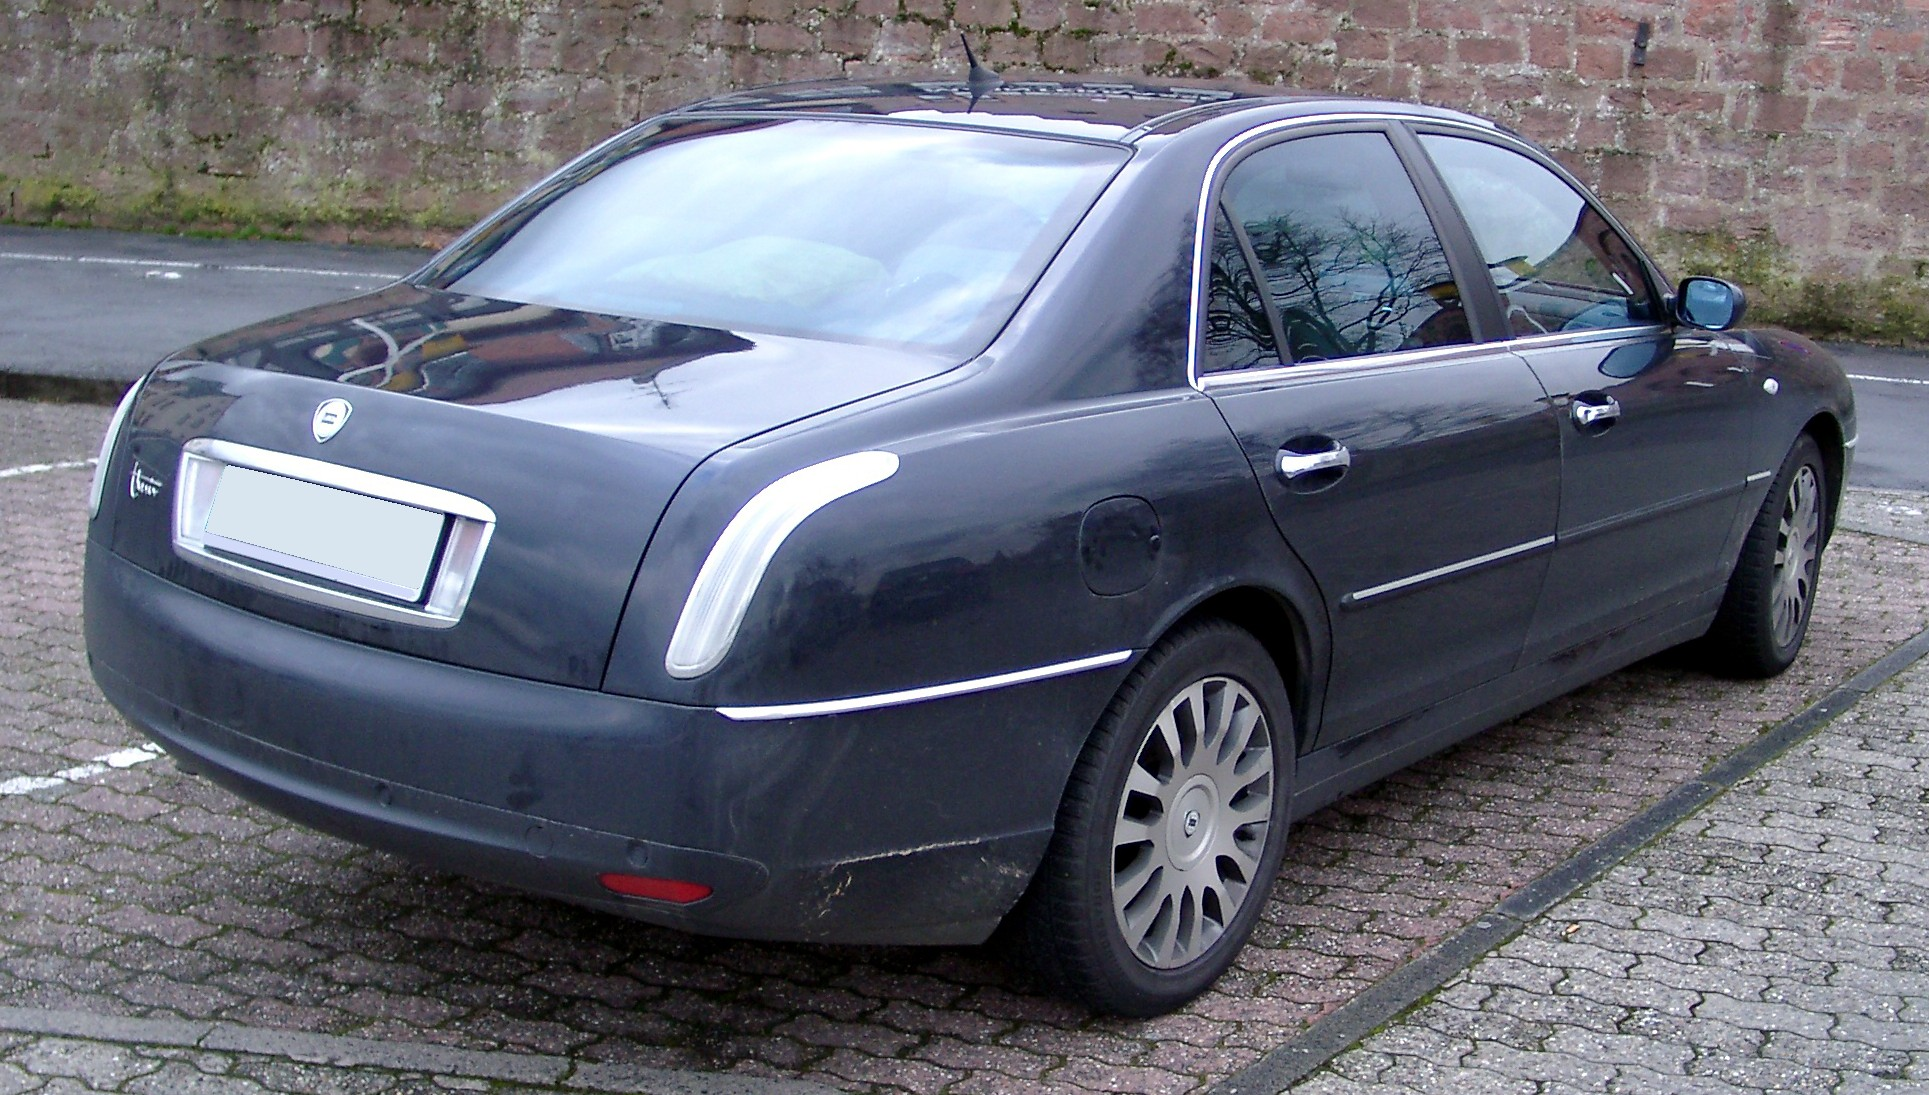 Lancia Thesis - Wikipedia, the free encyclopedia